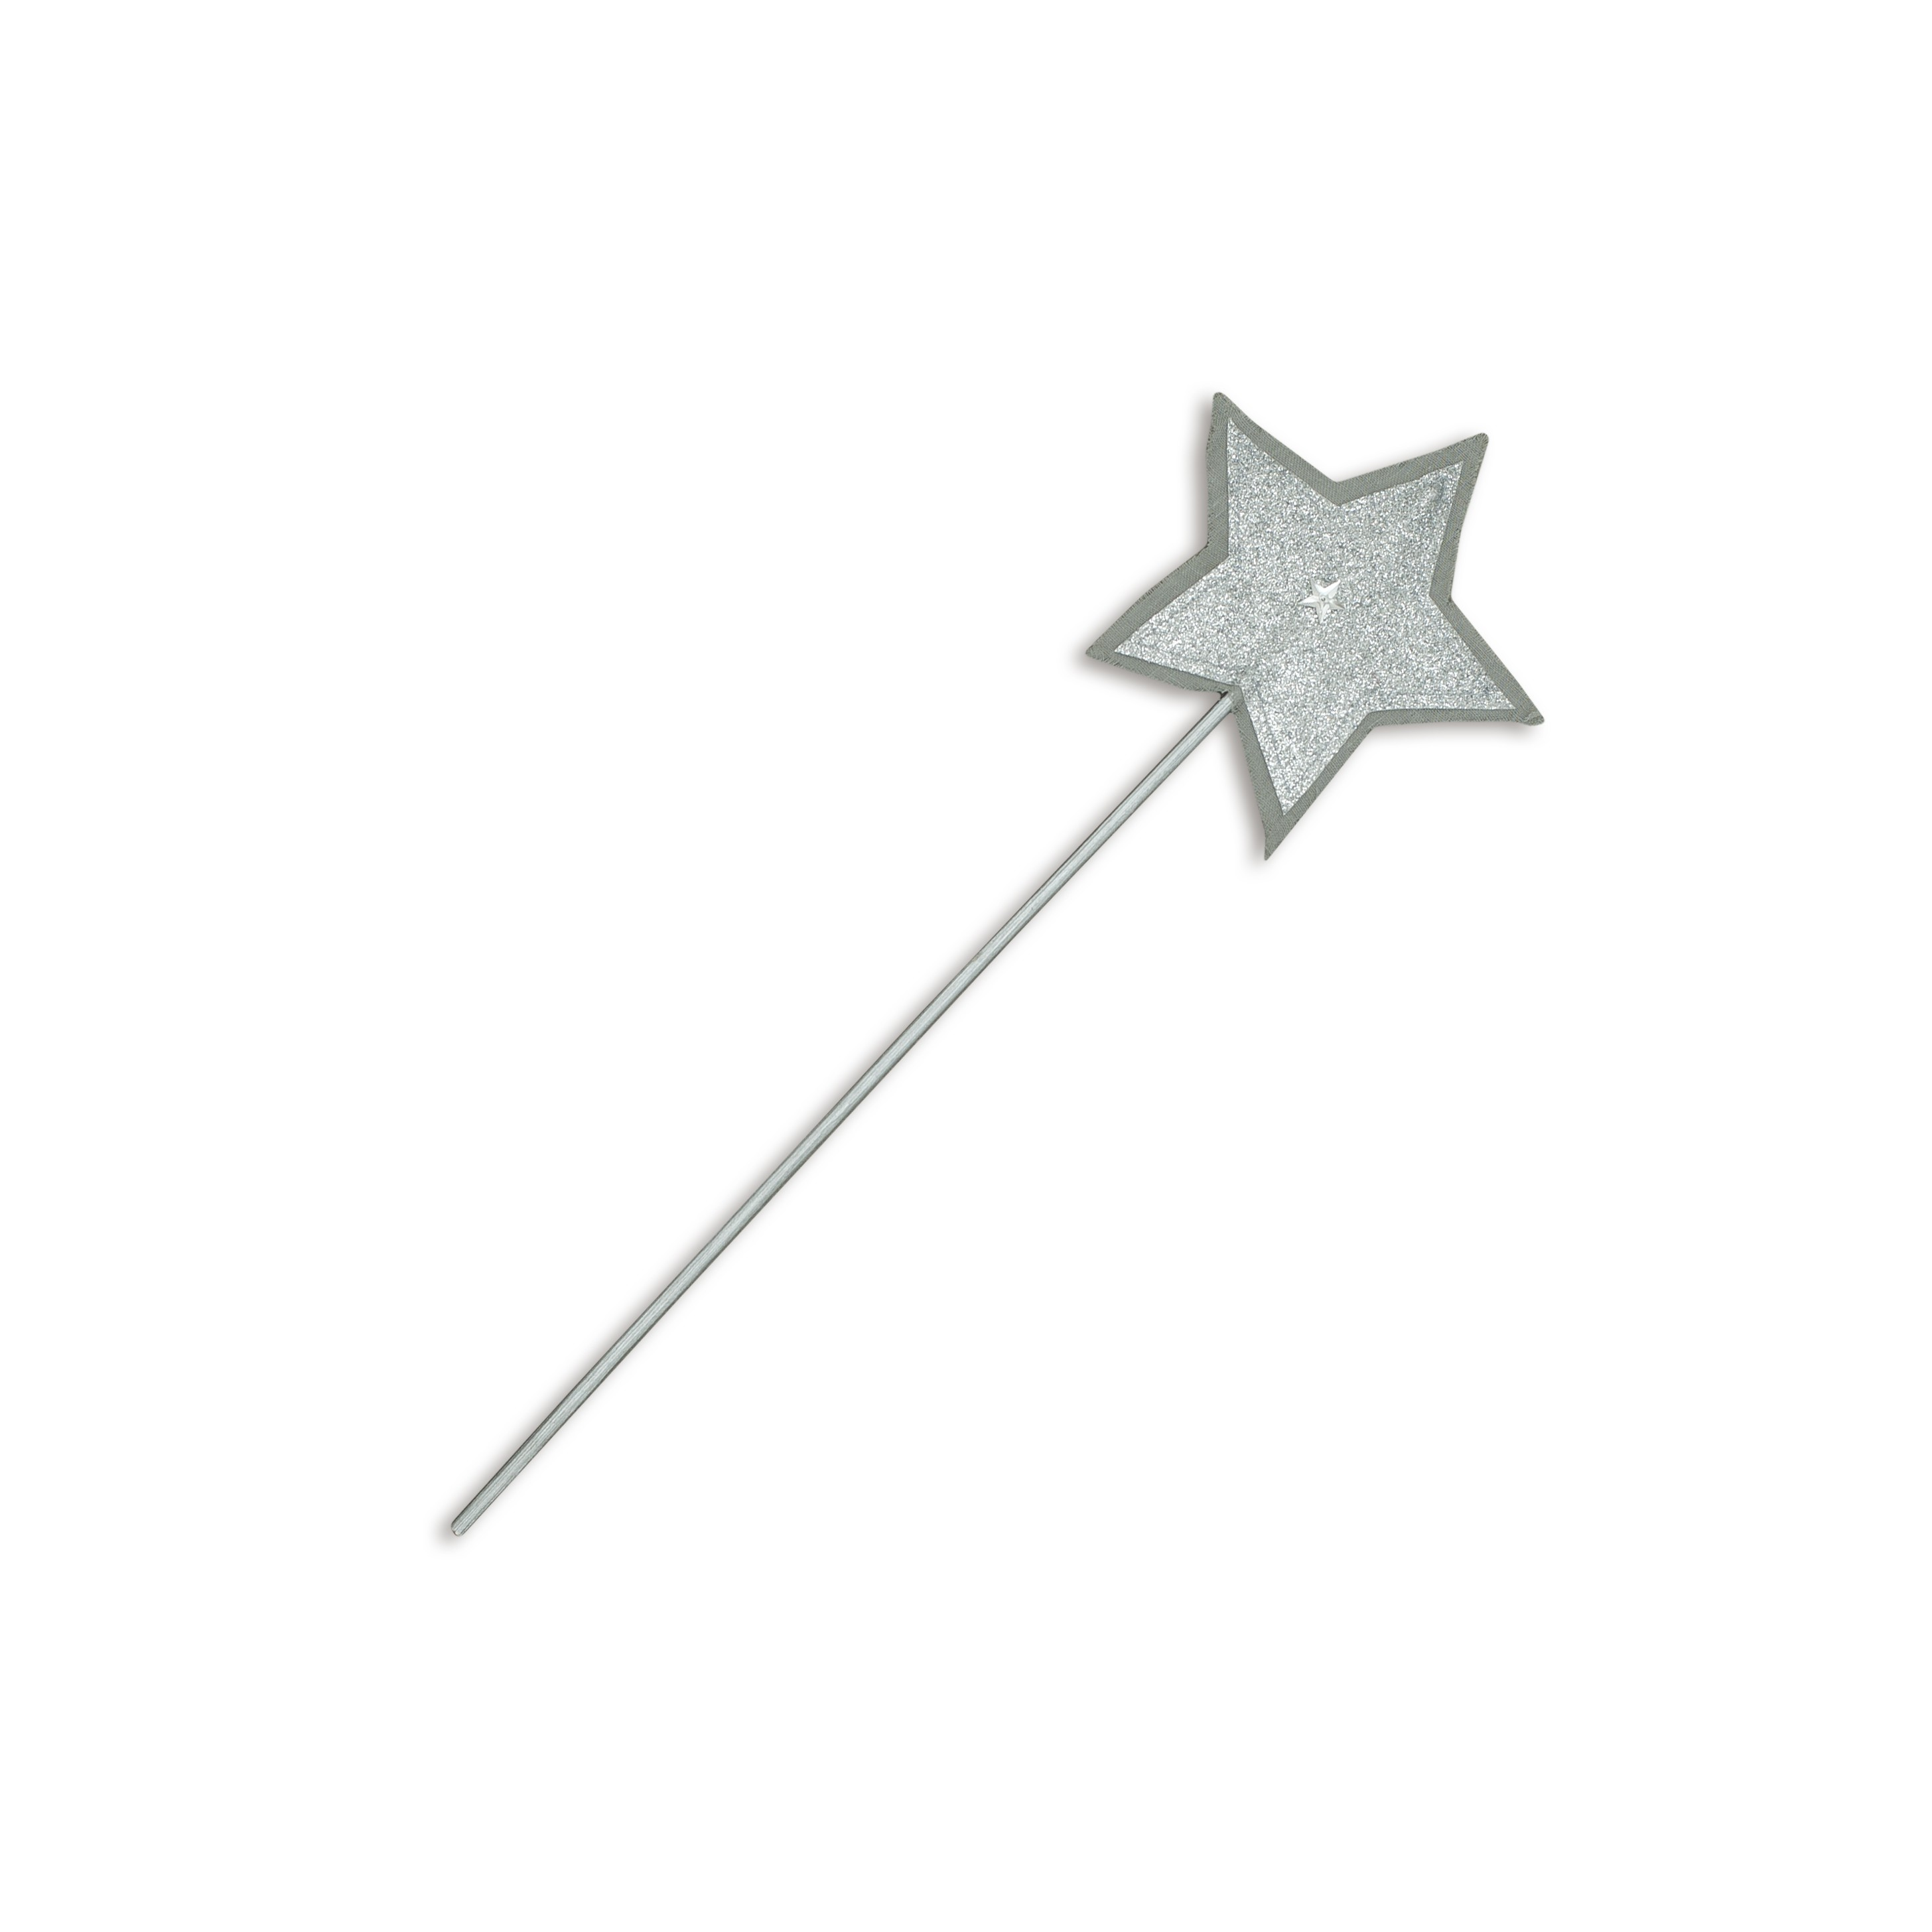 Fairy Wand Png Fairy Wand Png Fairy wand pngFairy Wand Clipart